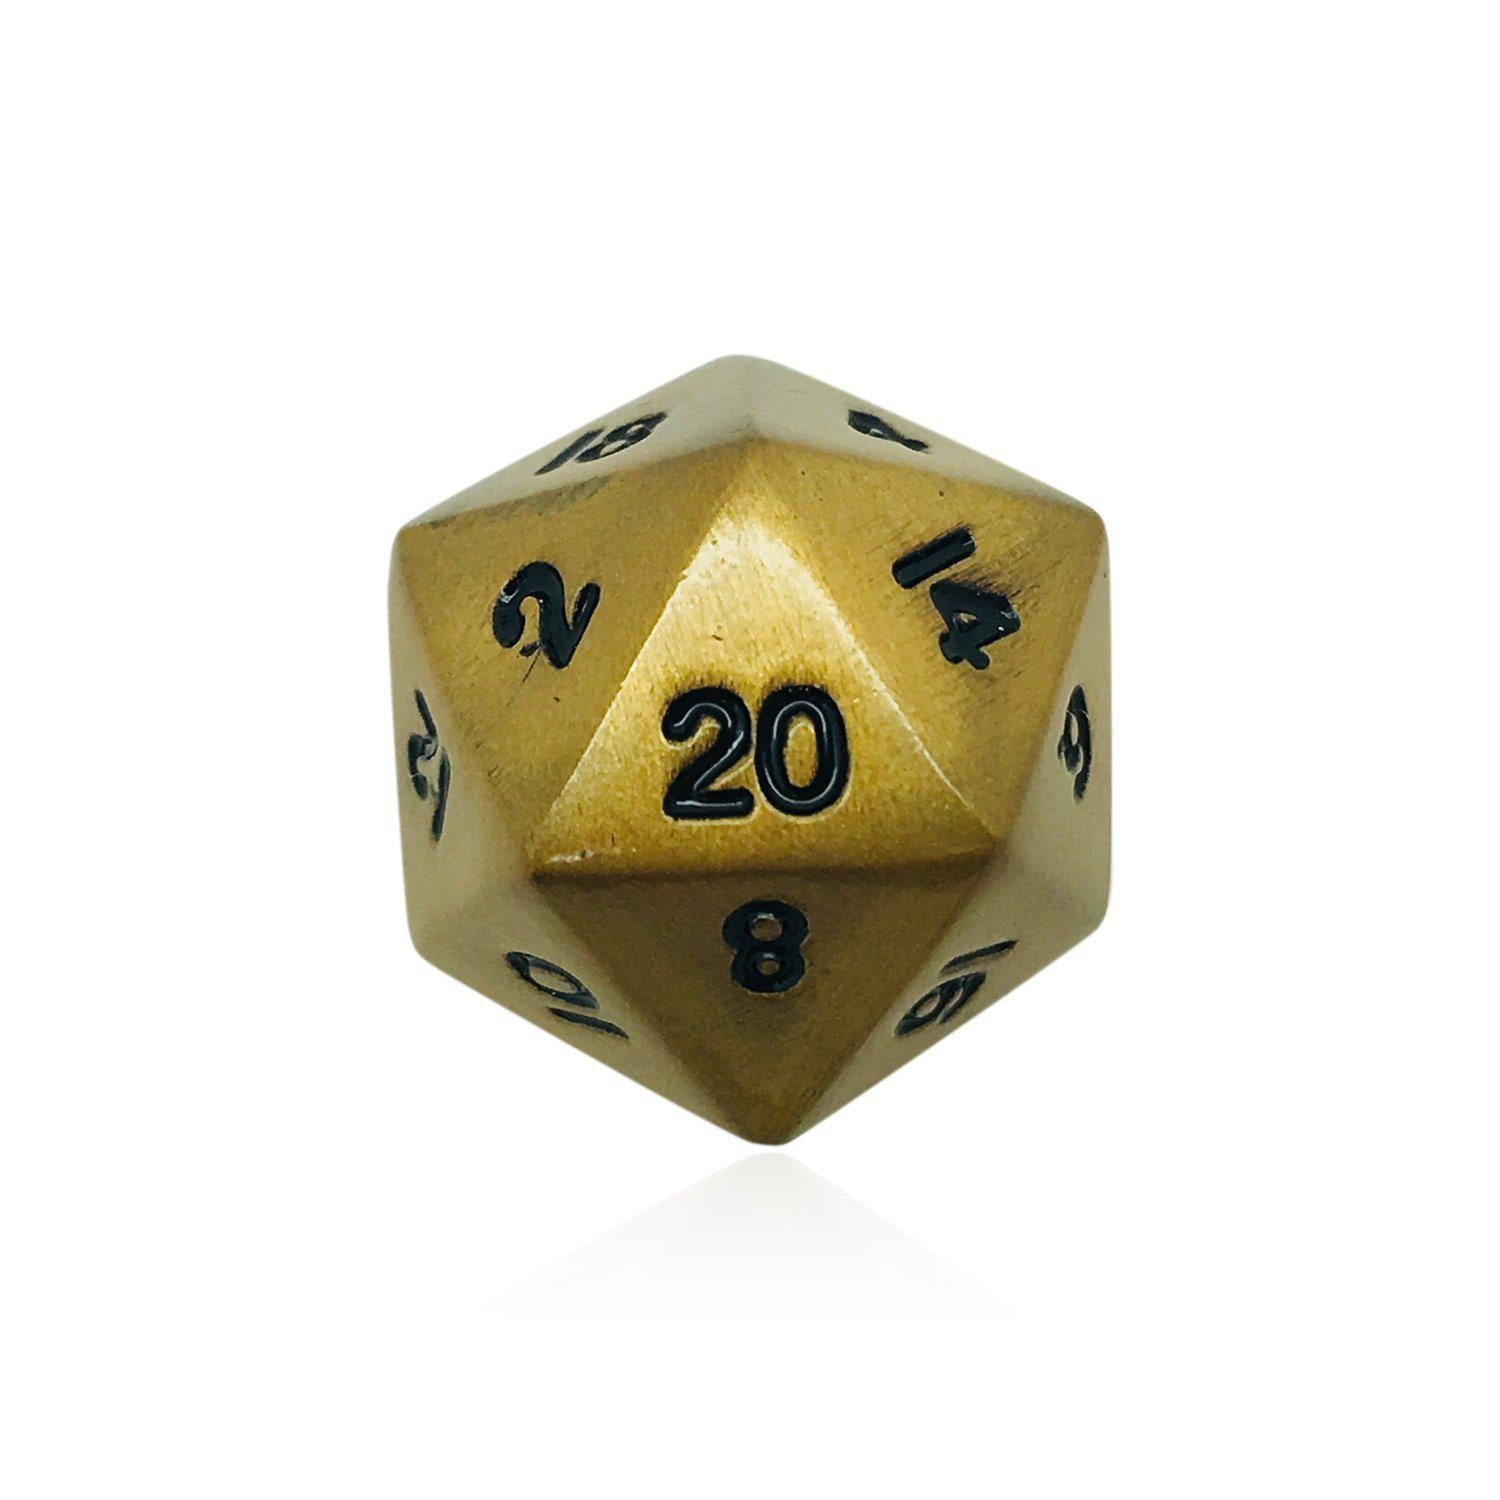 Single Alloy D20 in Dragons Gold by Norse Foundry-Dice-Norse Foundry-DND Dice-Polyhedral Dice-D20-Metal Dice-Precision Dice-Luxury Dice-Dungeons and Dragons-D&D-